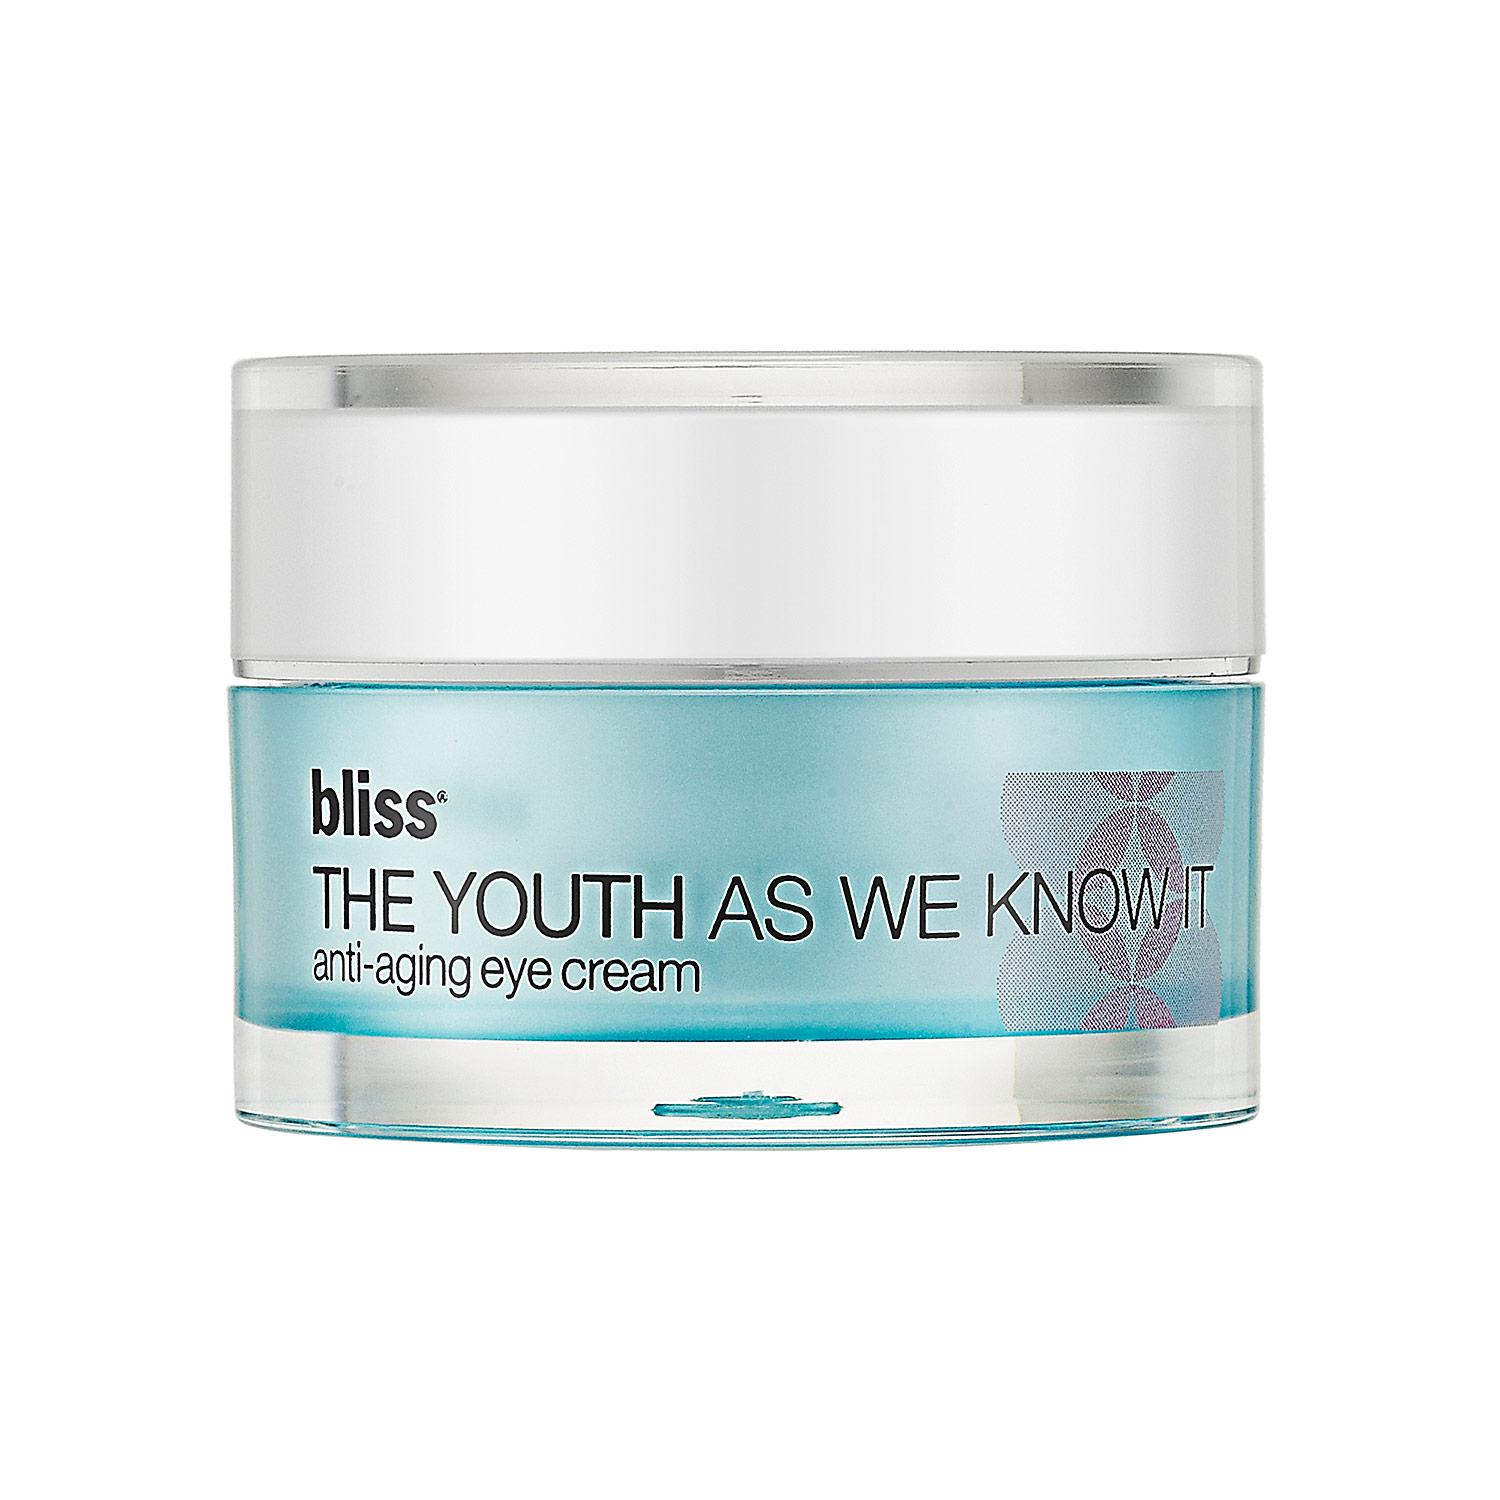 The Youth As We Know It™ Anti-Aging Eye Cream